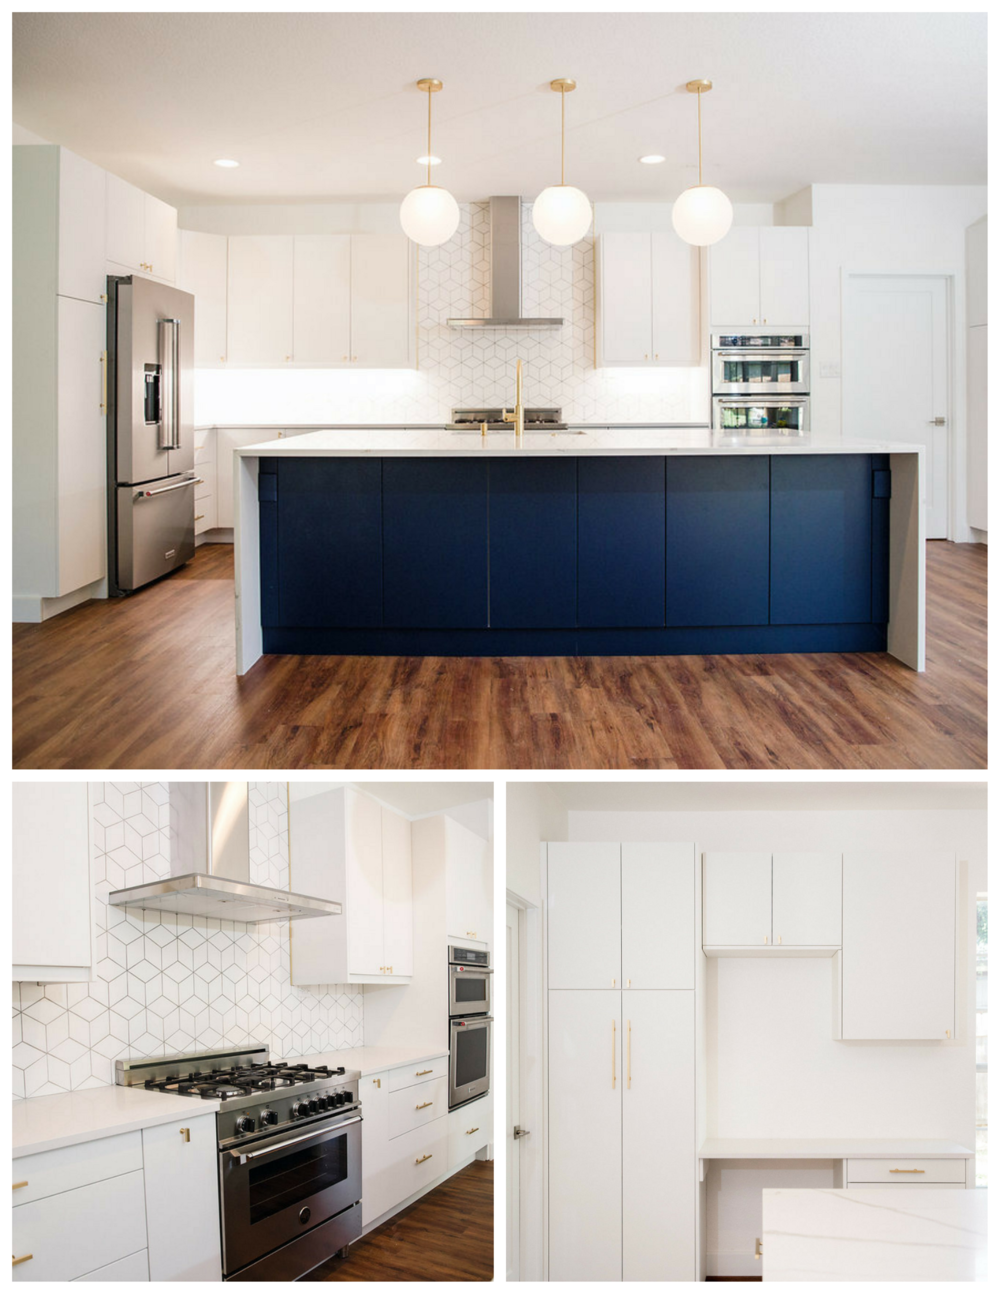 (ABOVE) Three pendant lights complete the look above this spacious island.   (LEFT) A double oven, slide in, and upgraded stovetop make this kitchen prime for some serious cooking.  (RIGHT) The kitchen was extended into the existing laundry area to create room for extra cabinet storage and a study nook.